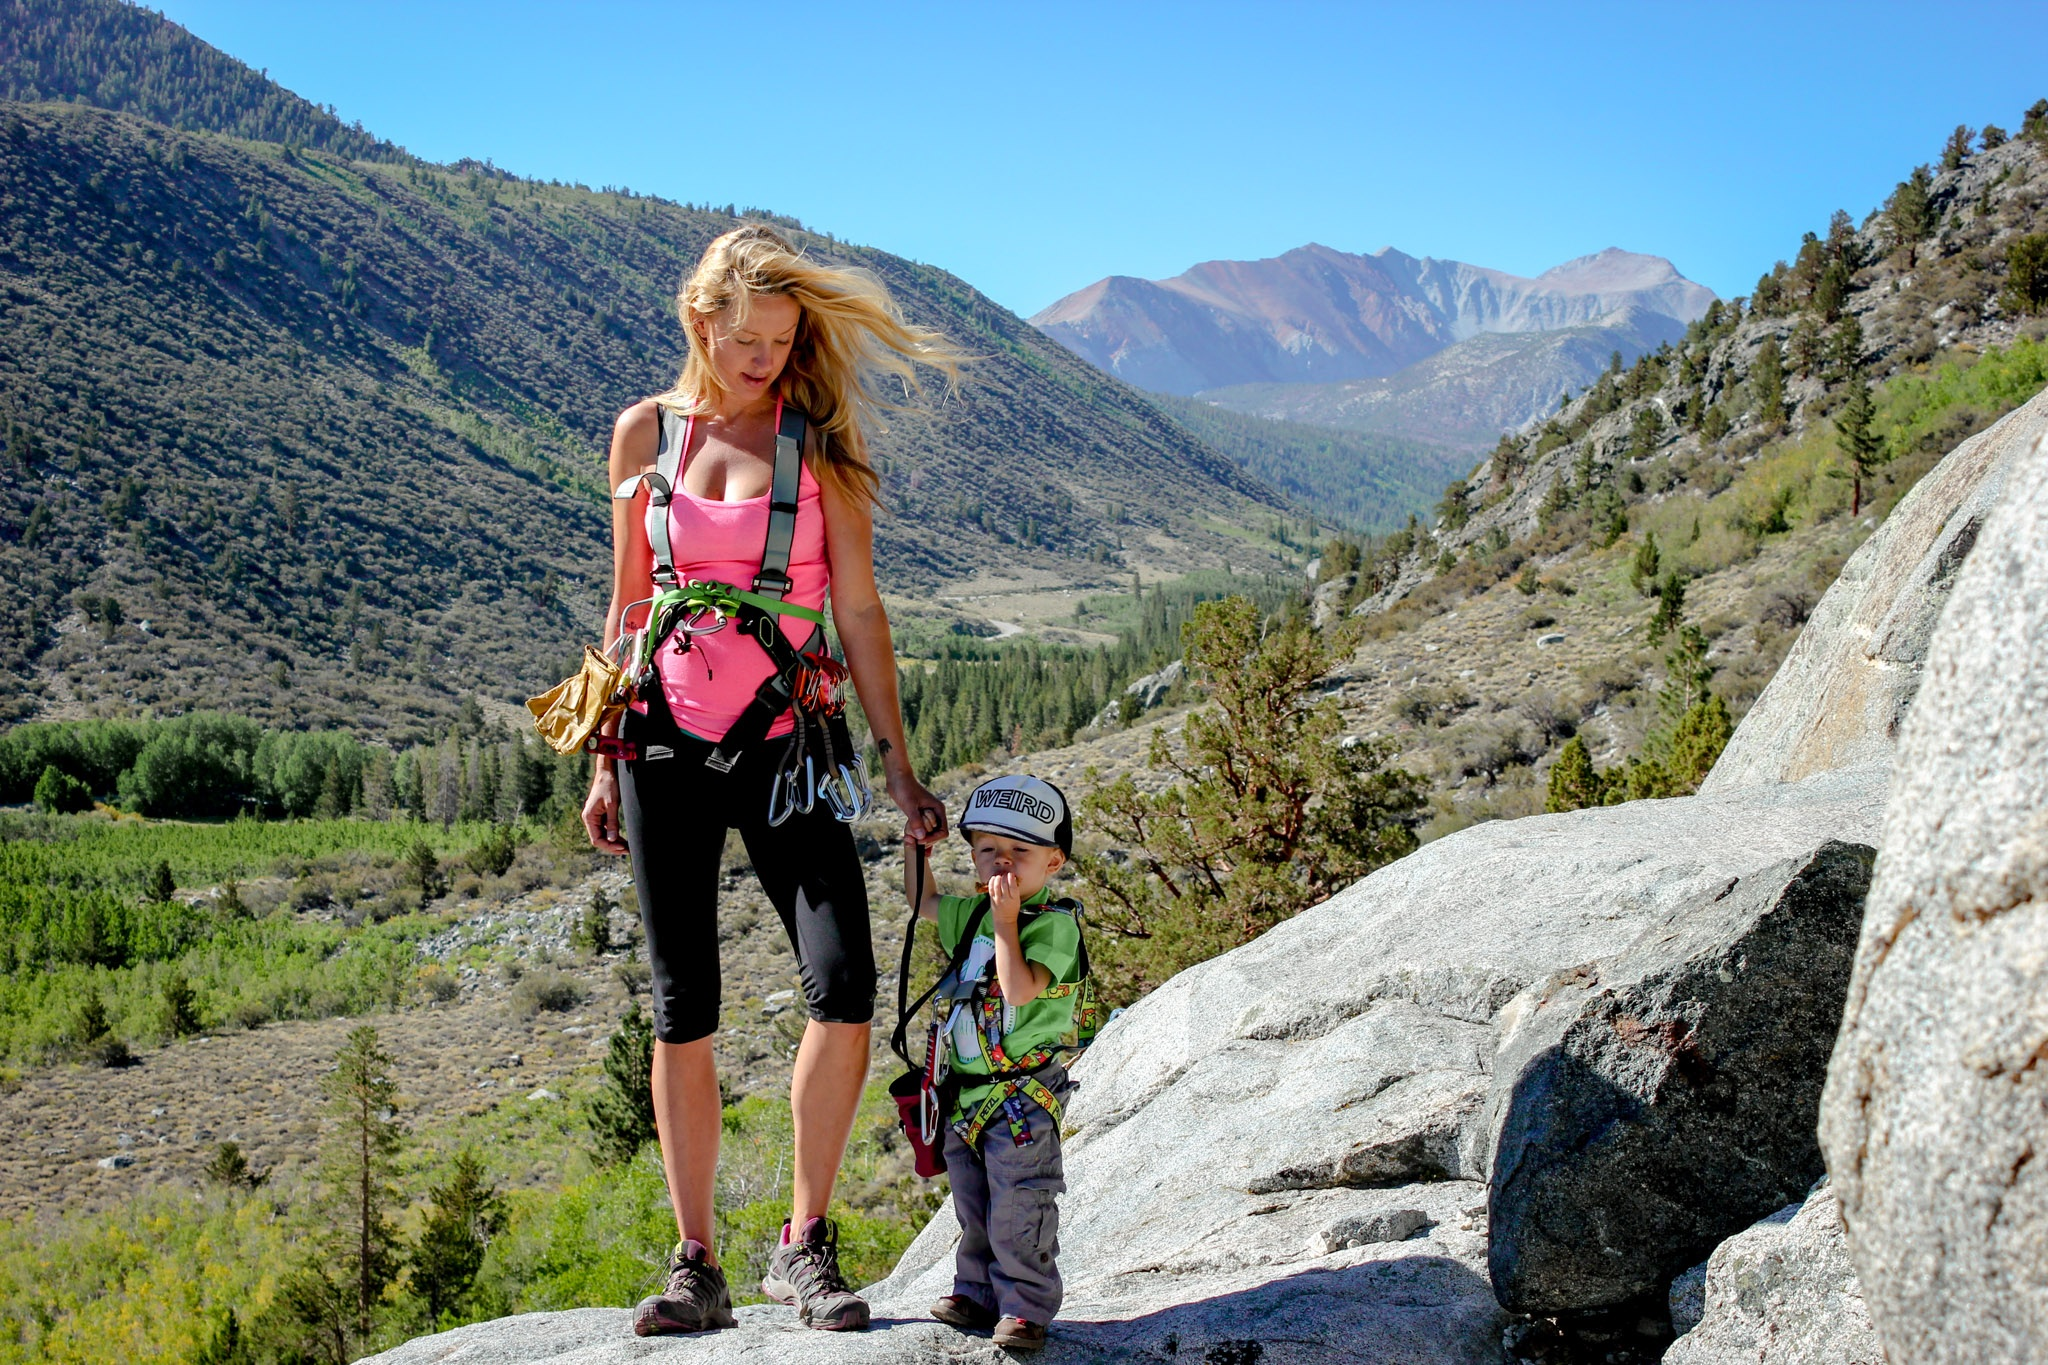 Why Kids Need Wilderness And Adventure >> Three Single Moms Raise Their Kids On Adventure In Upcoming Film